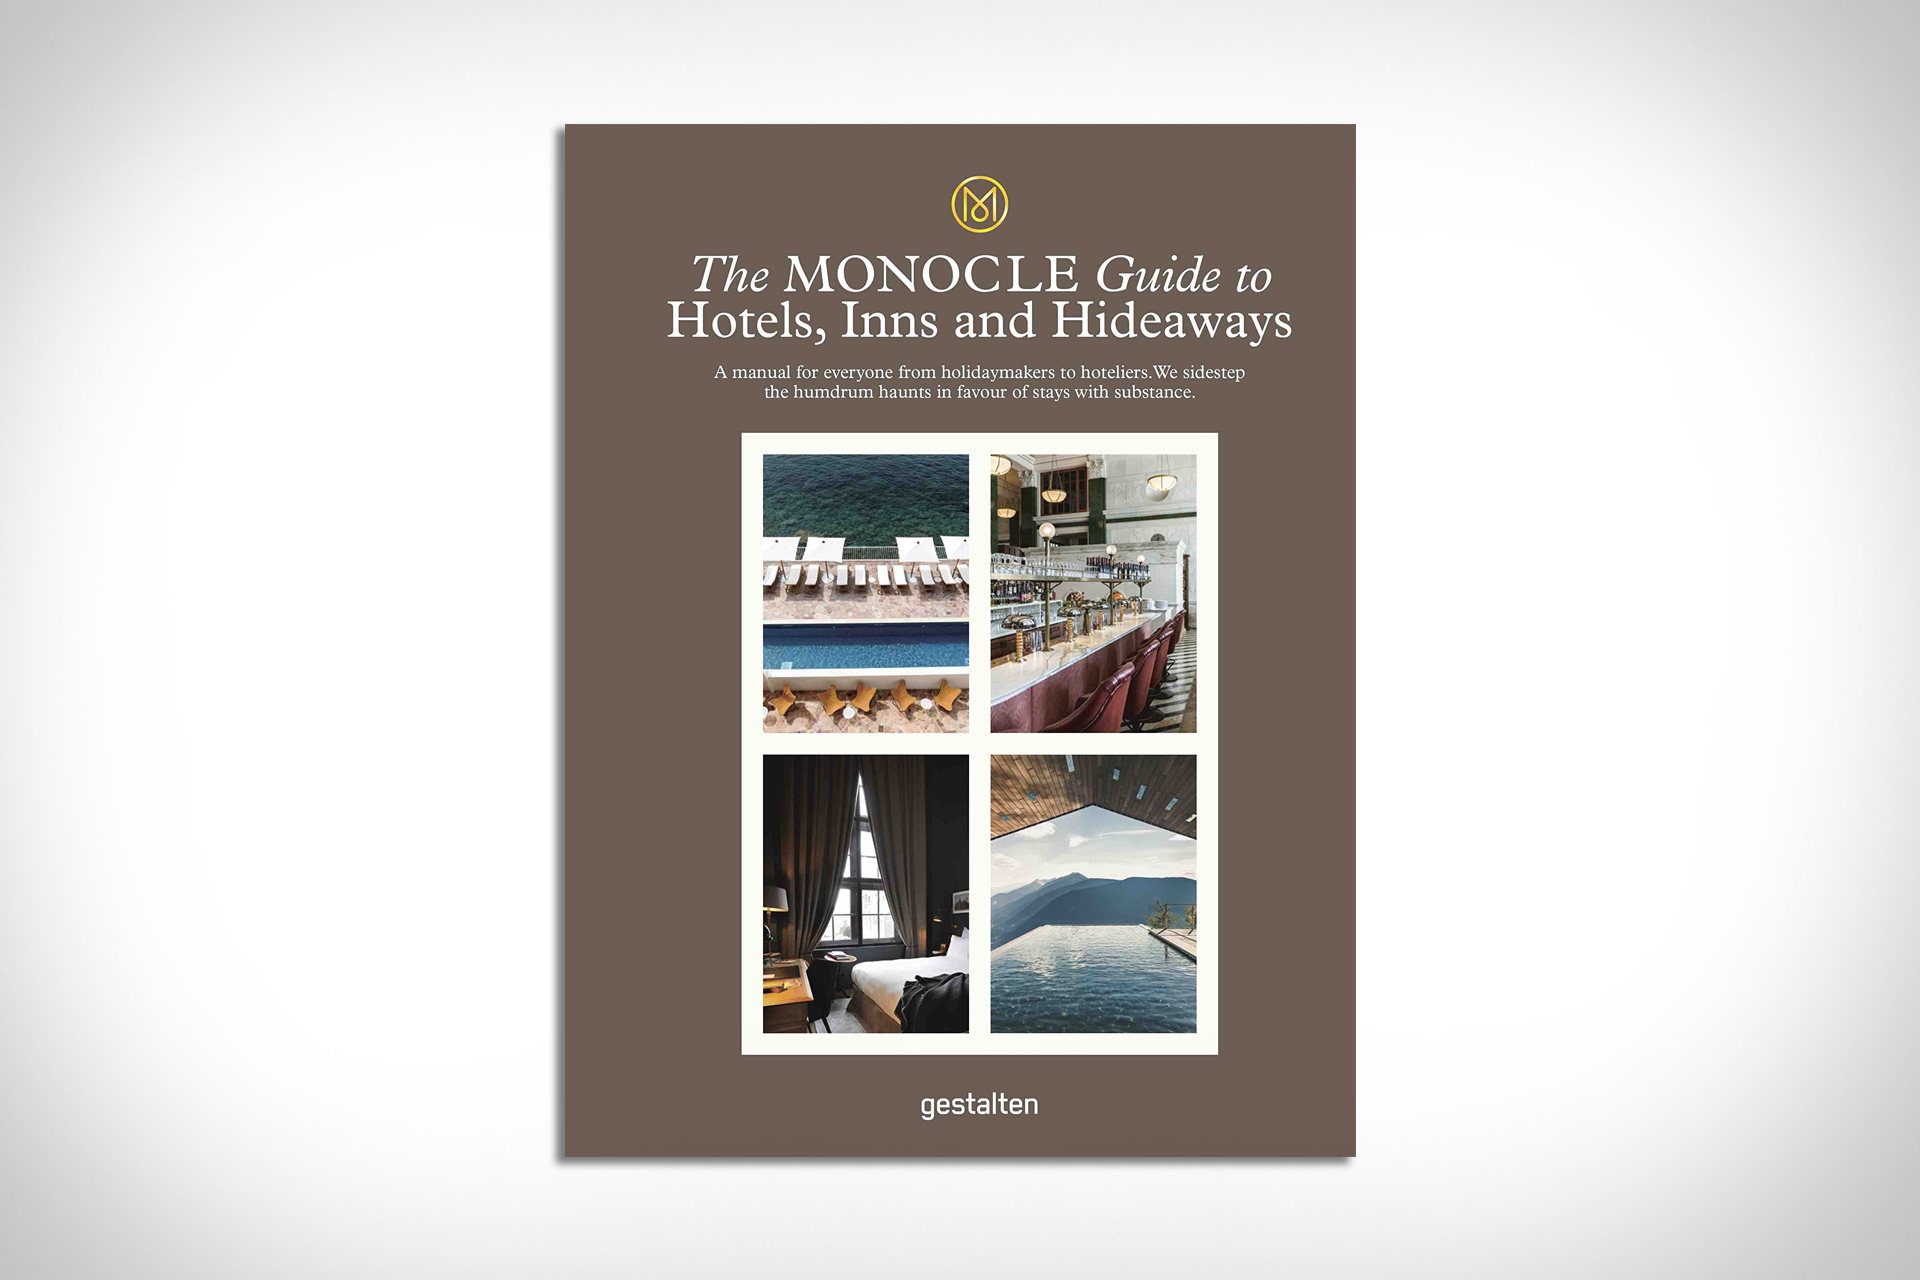 Monocle Guide to Hotels, Inns and Hideaways